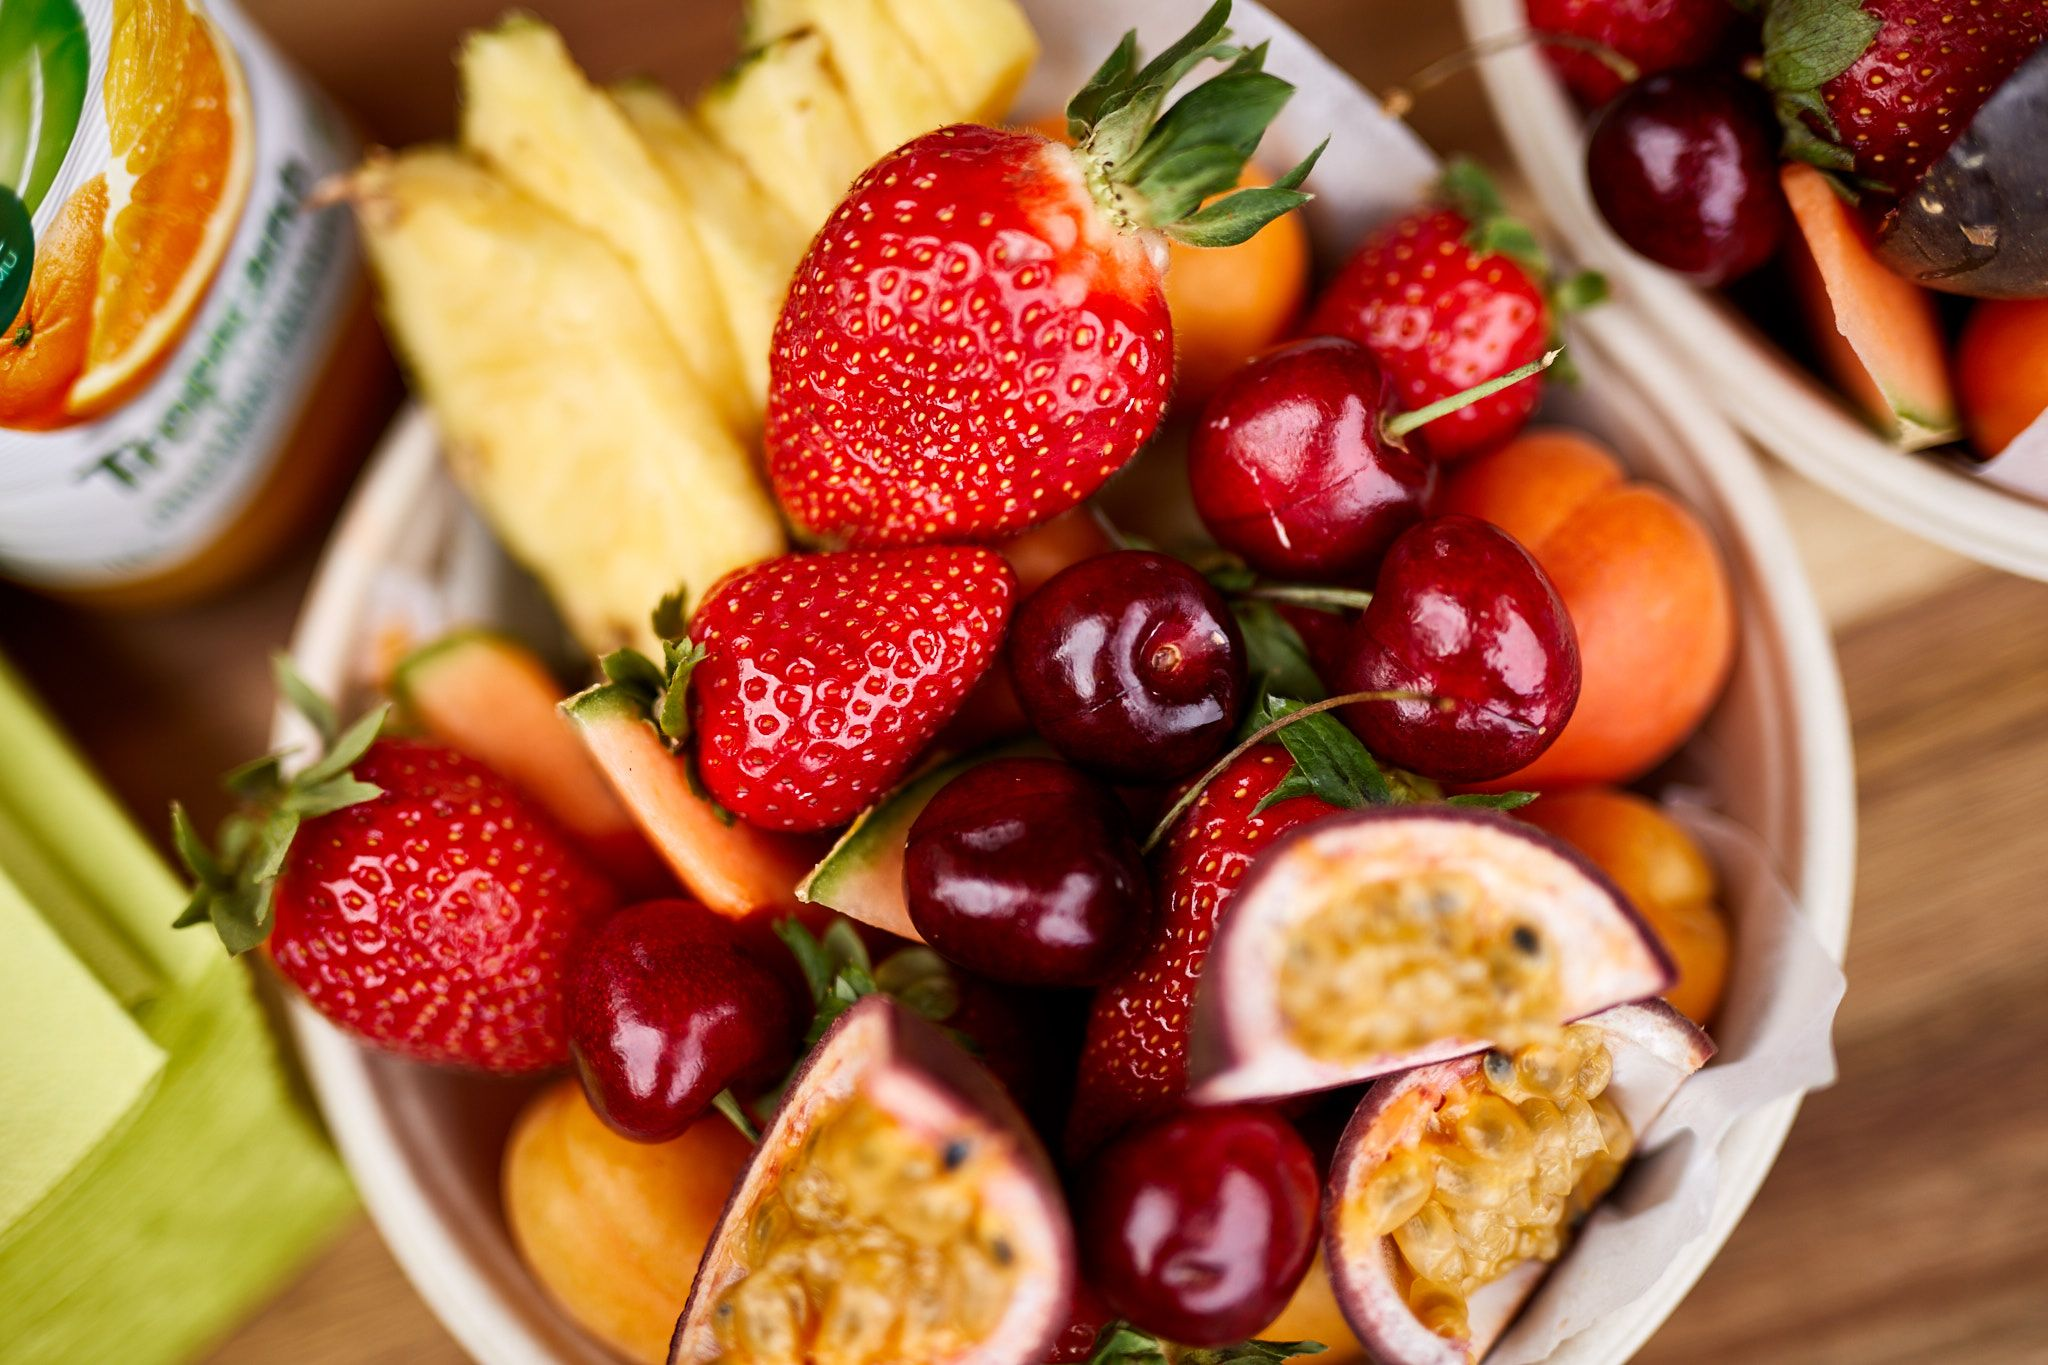 Delicious fruit plate.